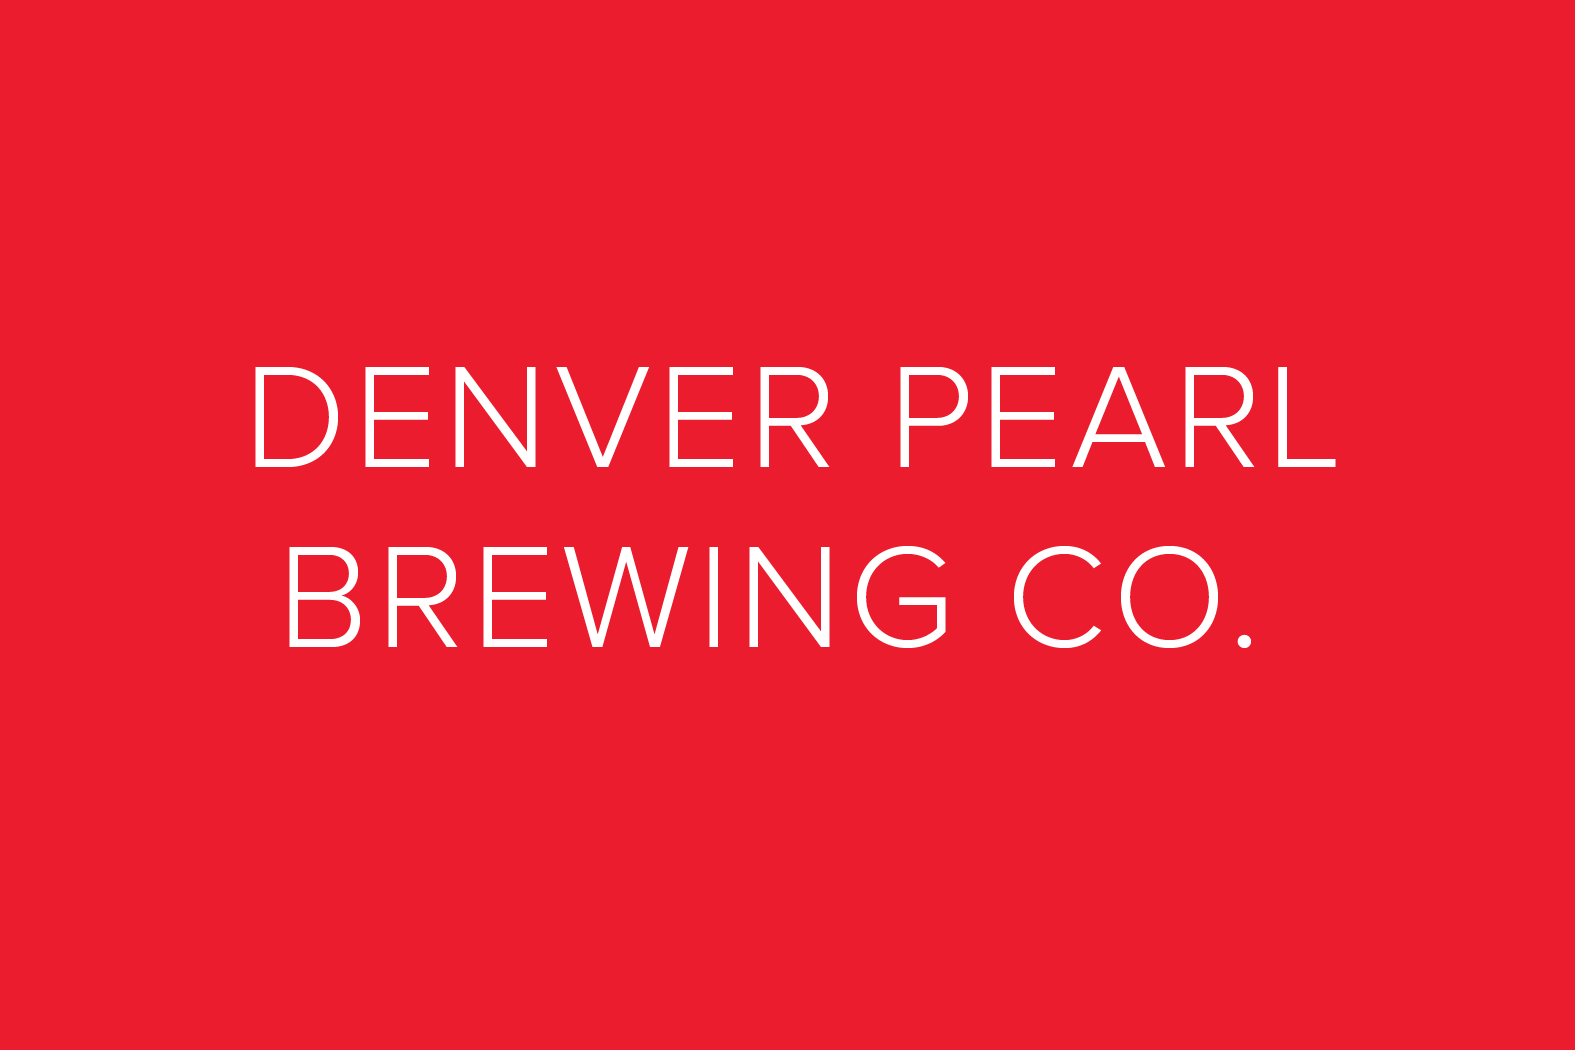 denver pearl brewing co.png